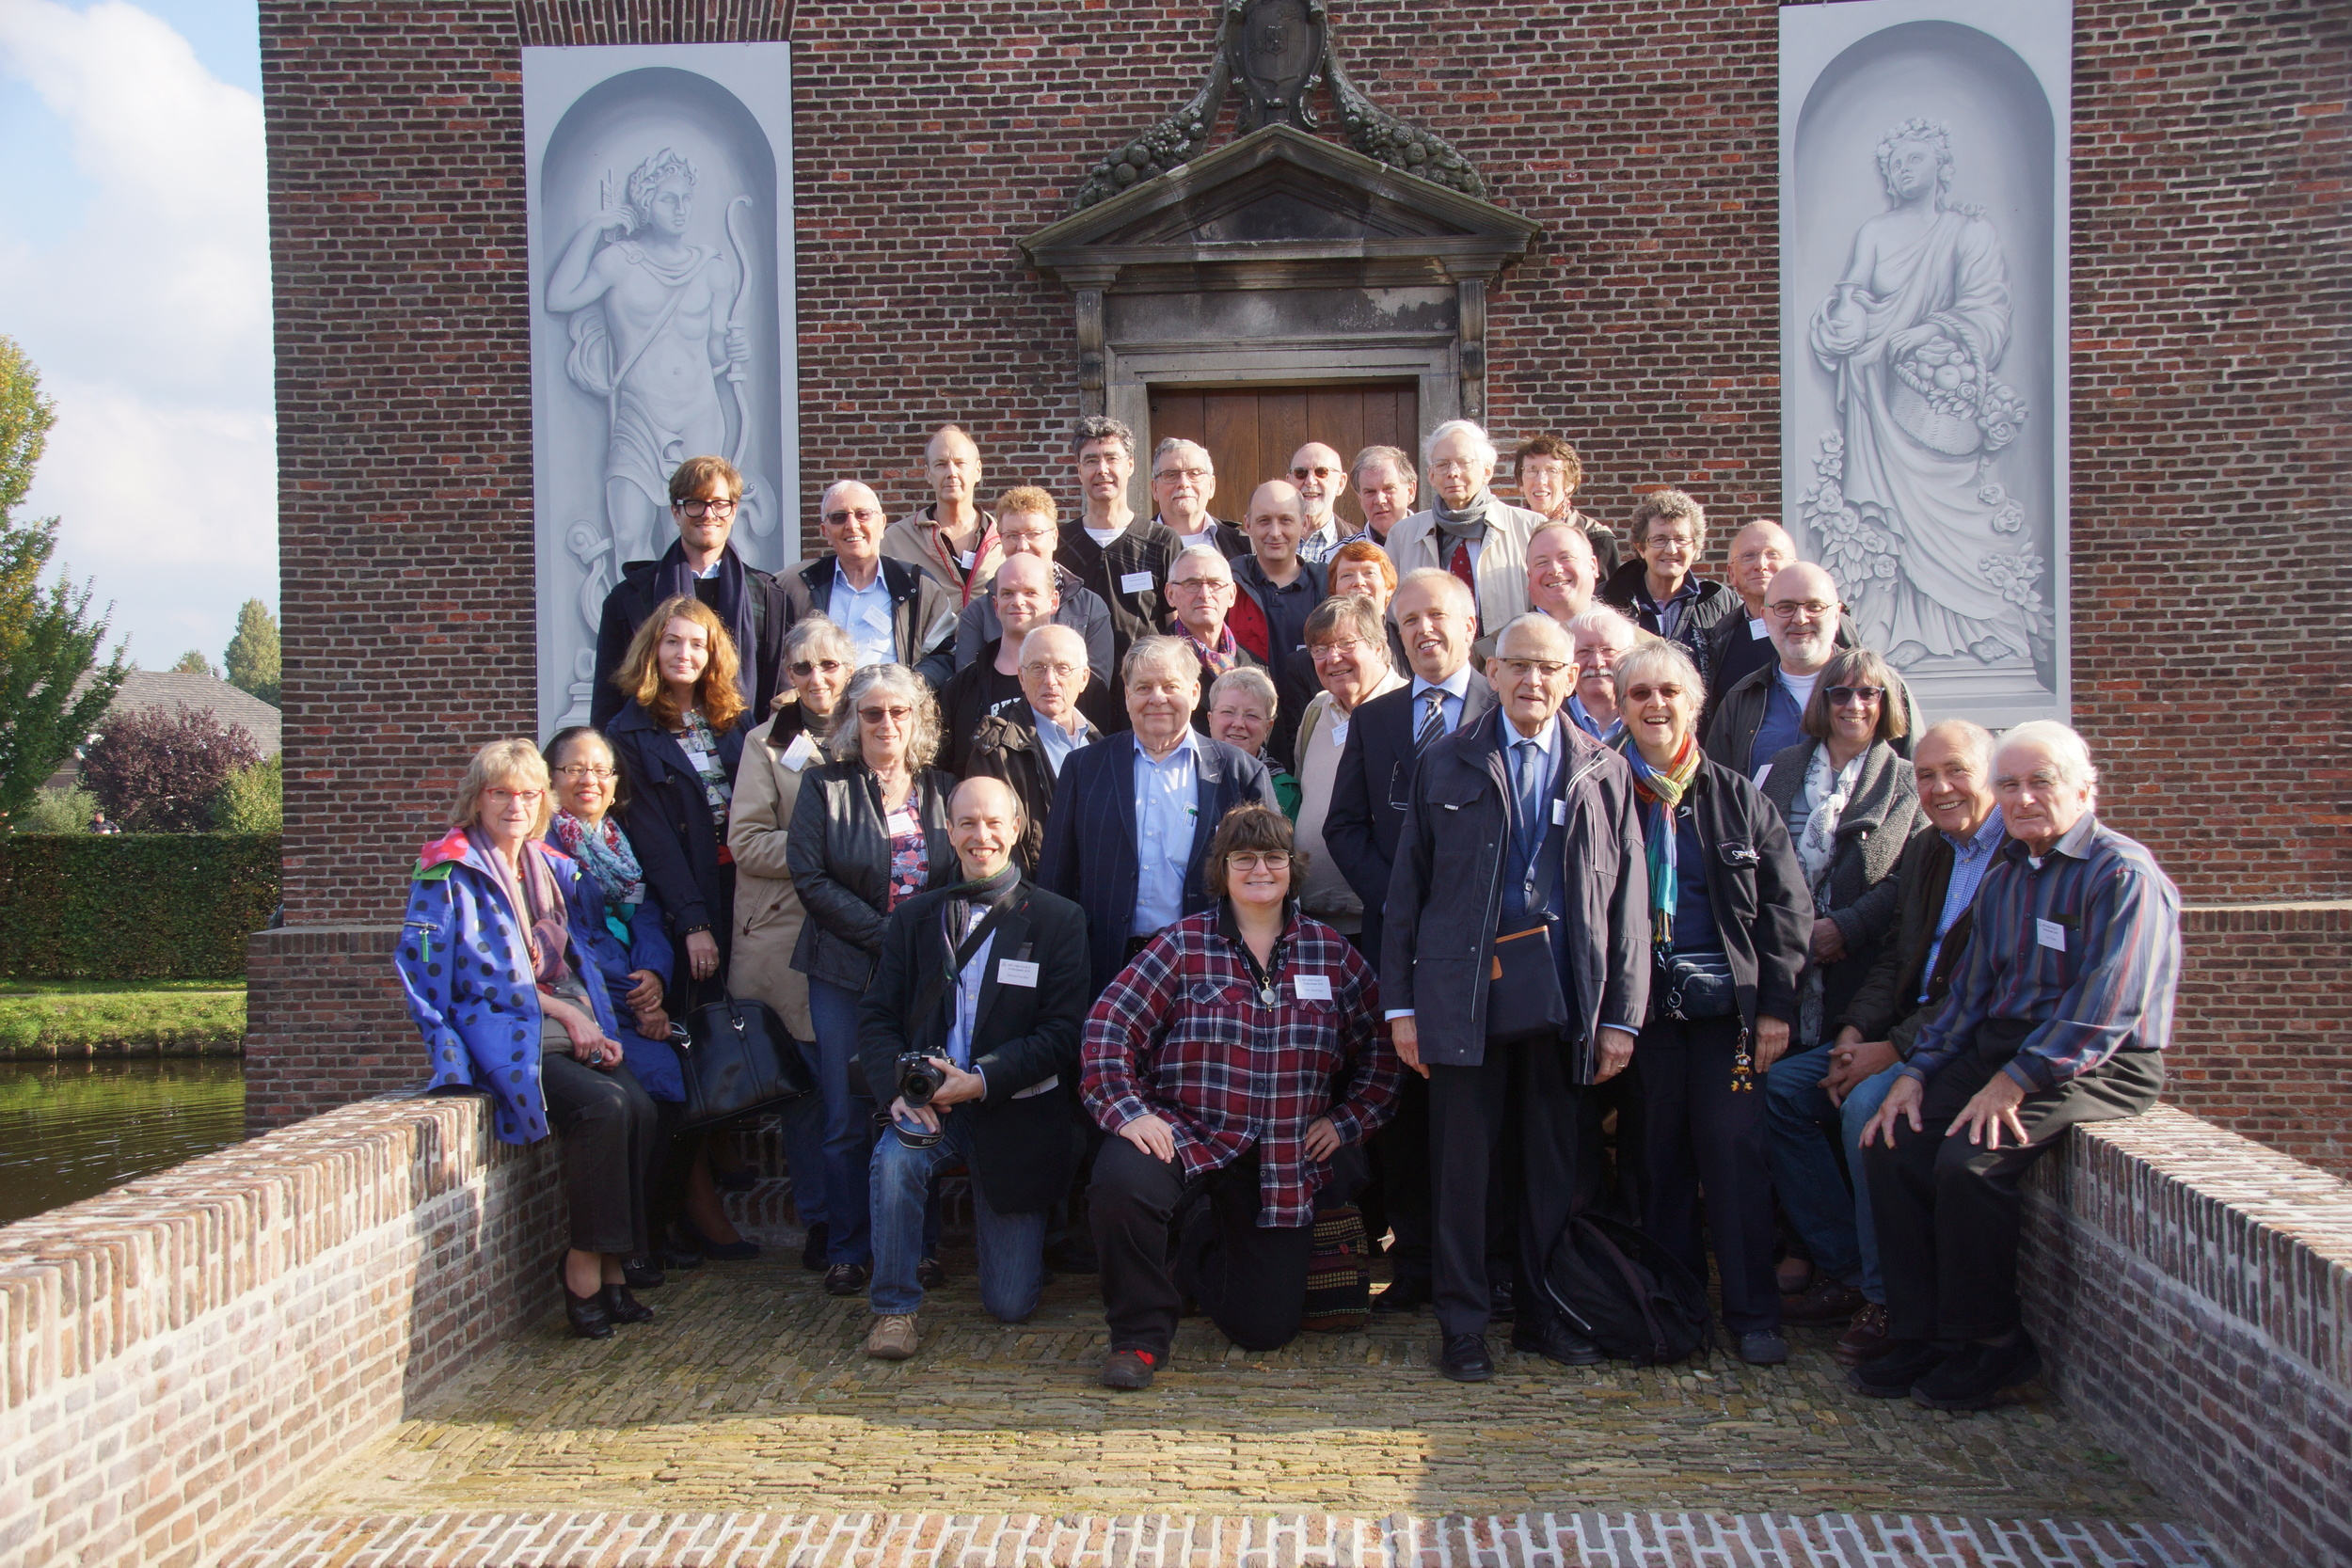 Members of the SIS on the 2015 Dutch Study Tour – photograph by Carla Aangenendt